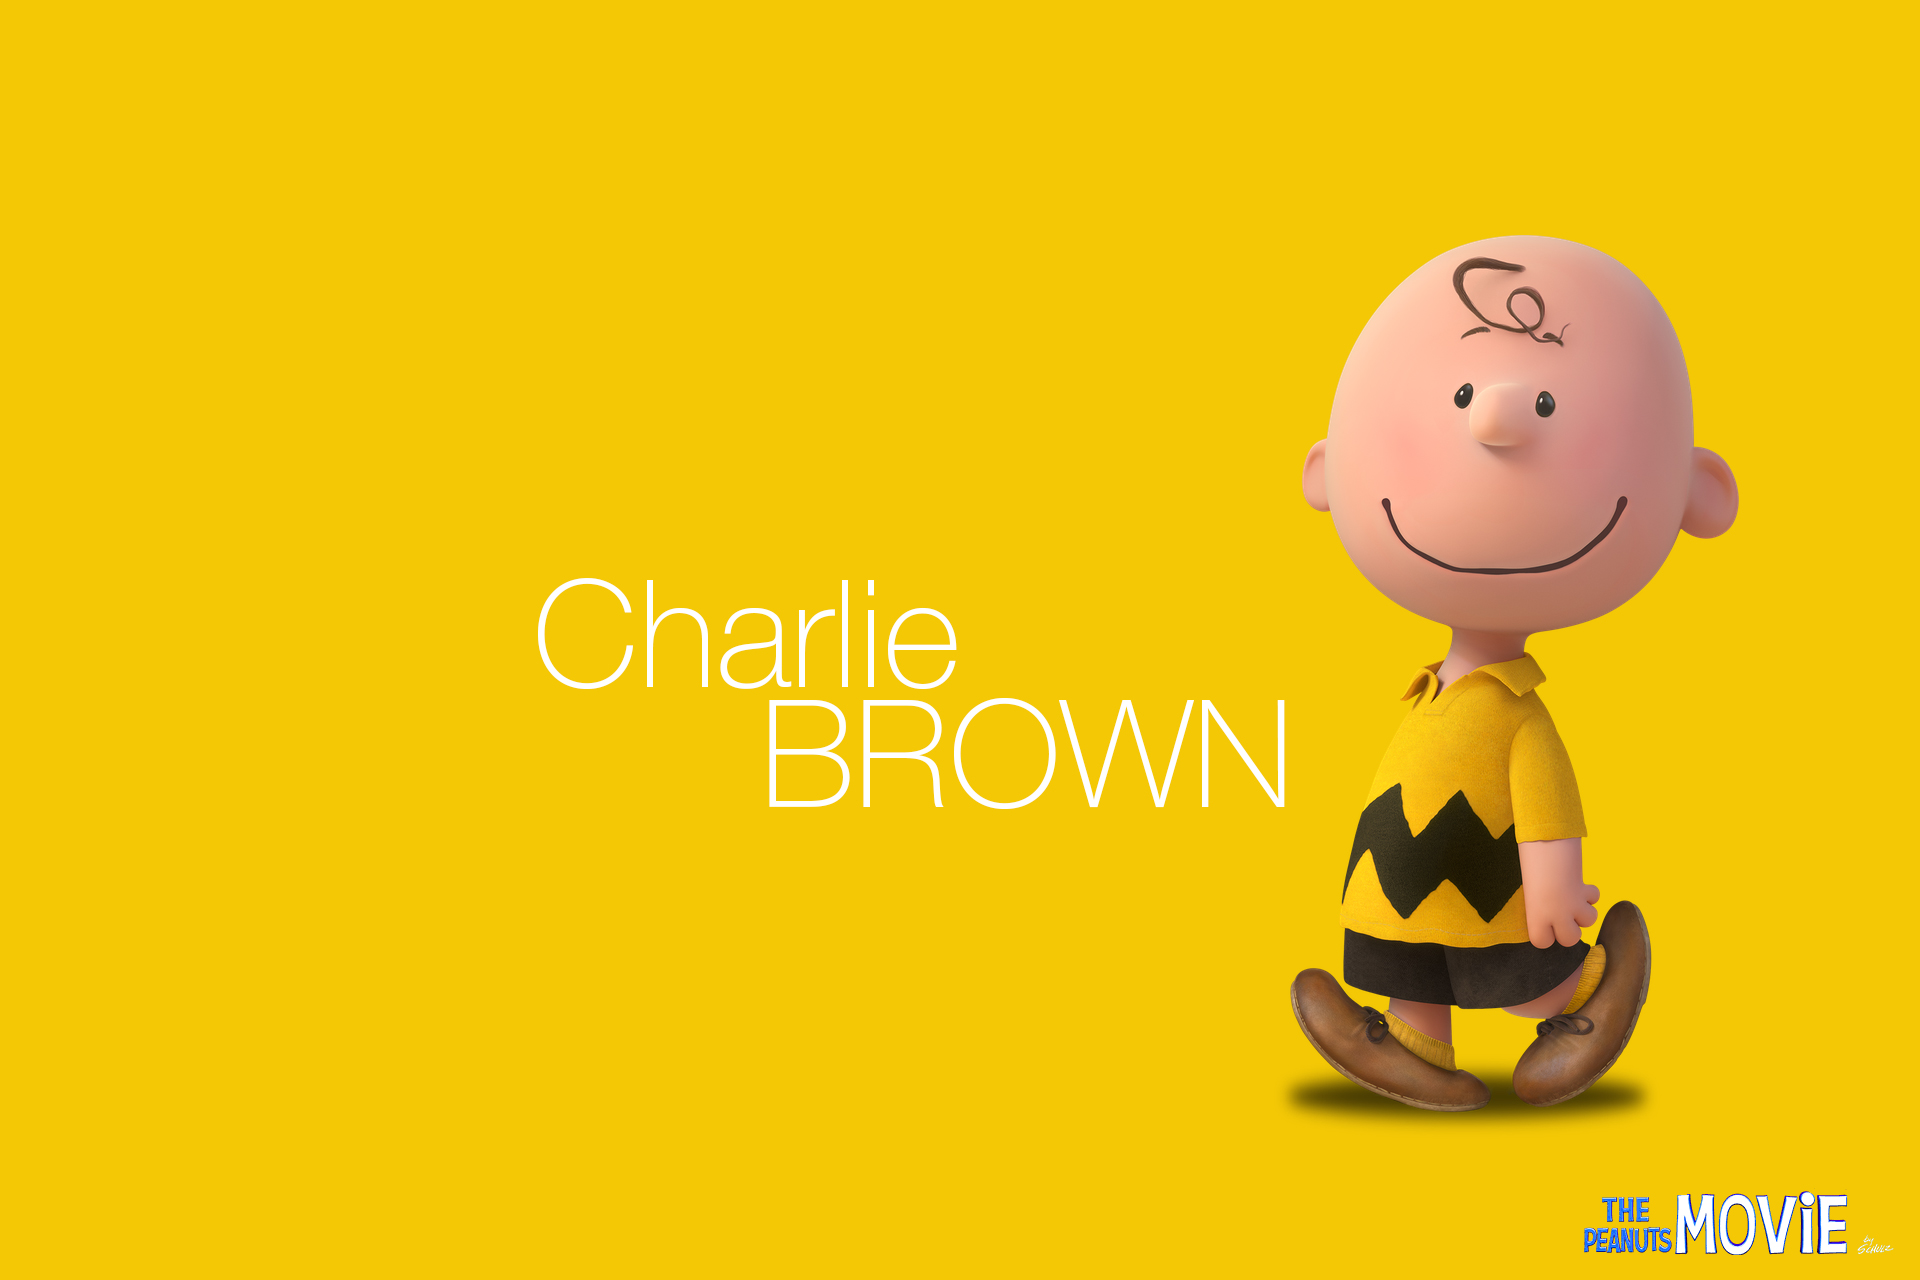 The Peanuts Movie HD wallpaper Charlie Brown VolGanga 1920x1280